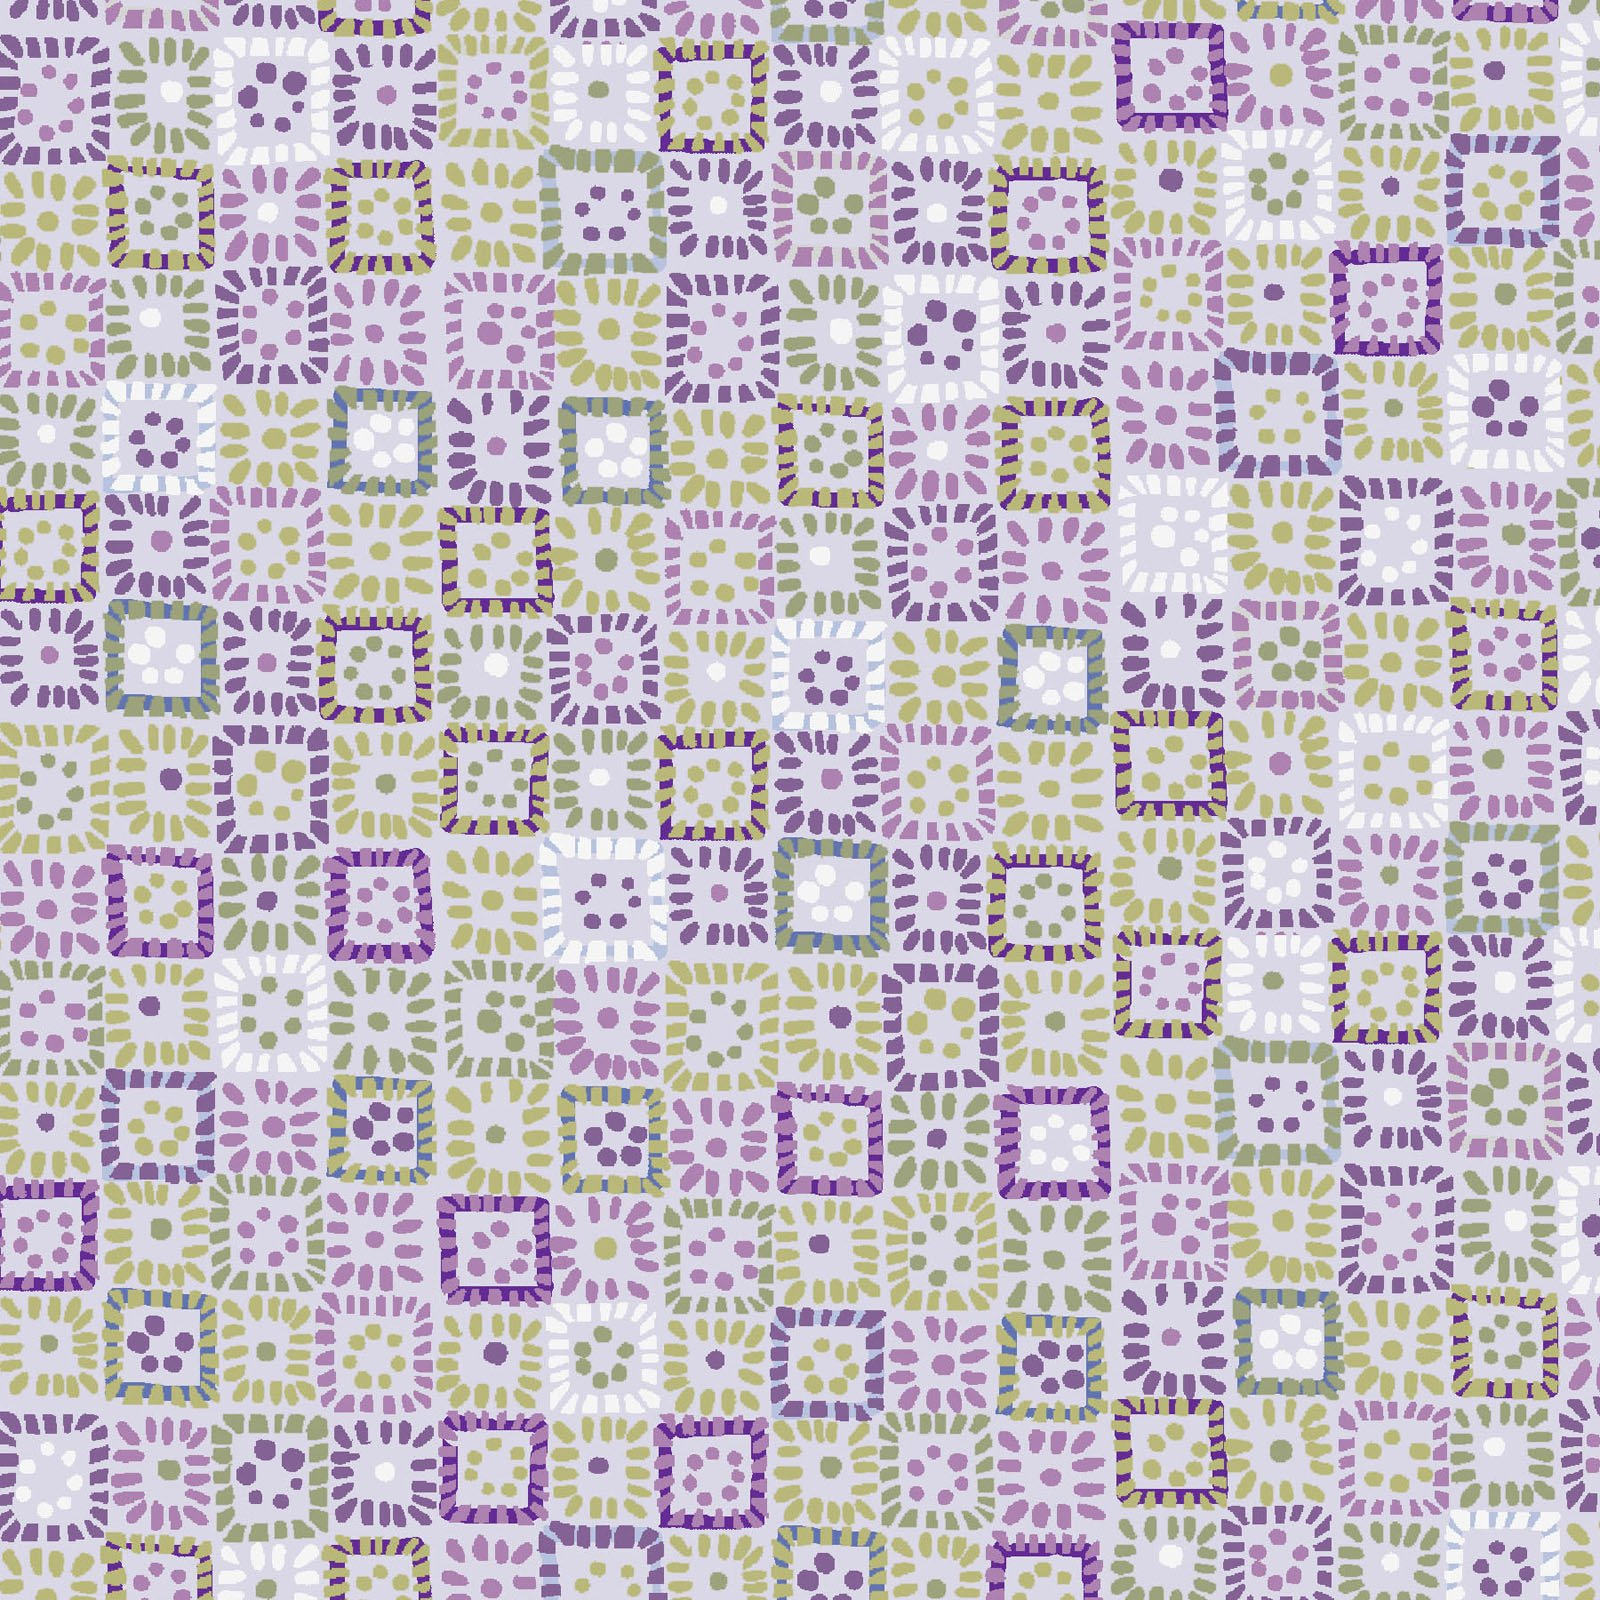 KASK-4232 C - KASHMIR KALEIDOSCOPE BY P&B BOUTIQUE SQUARES PURPLE